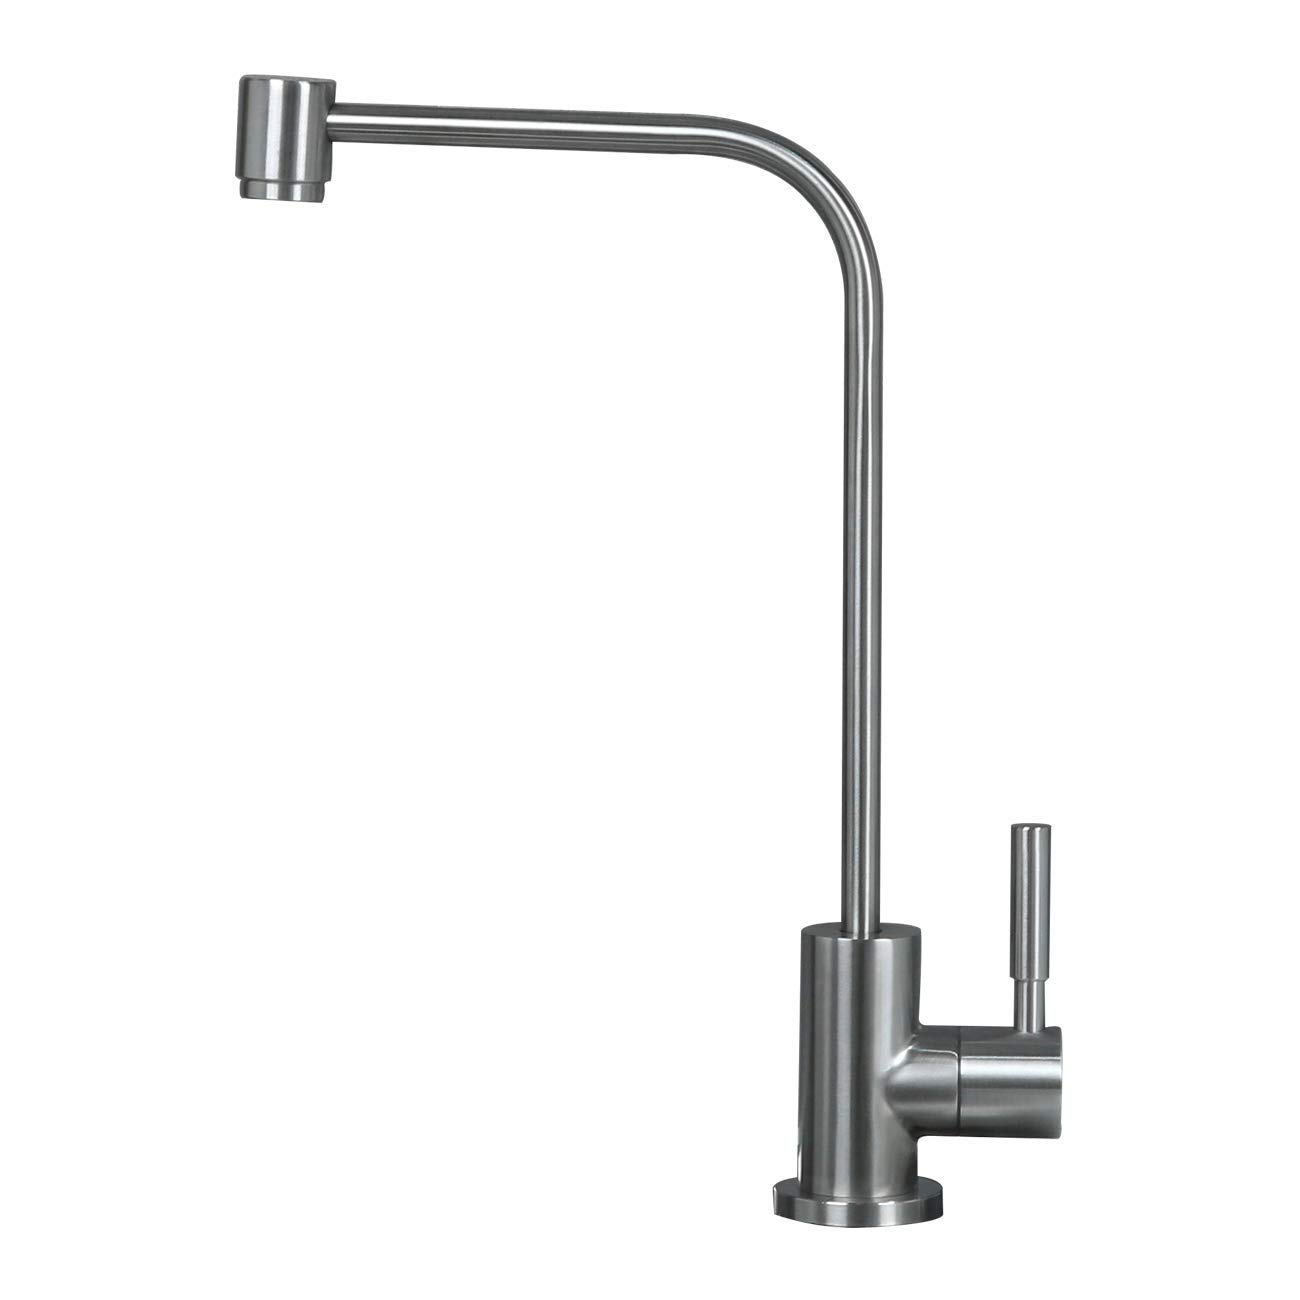 Water Filter Faucet, Fits most reverse osmosis water filtration system, Kitchen Bar Sink Purifier Drinking Water Faucet, Stainless Steel,Lead-Free, Brushed, Single Handle